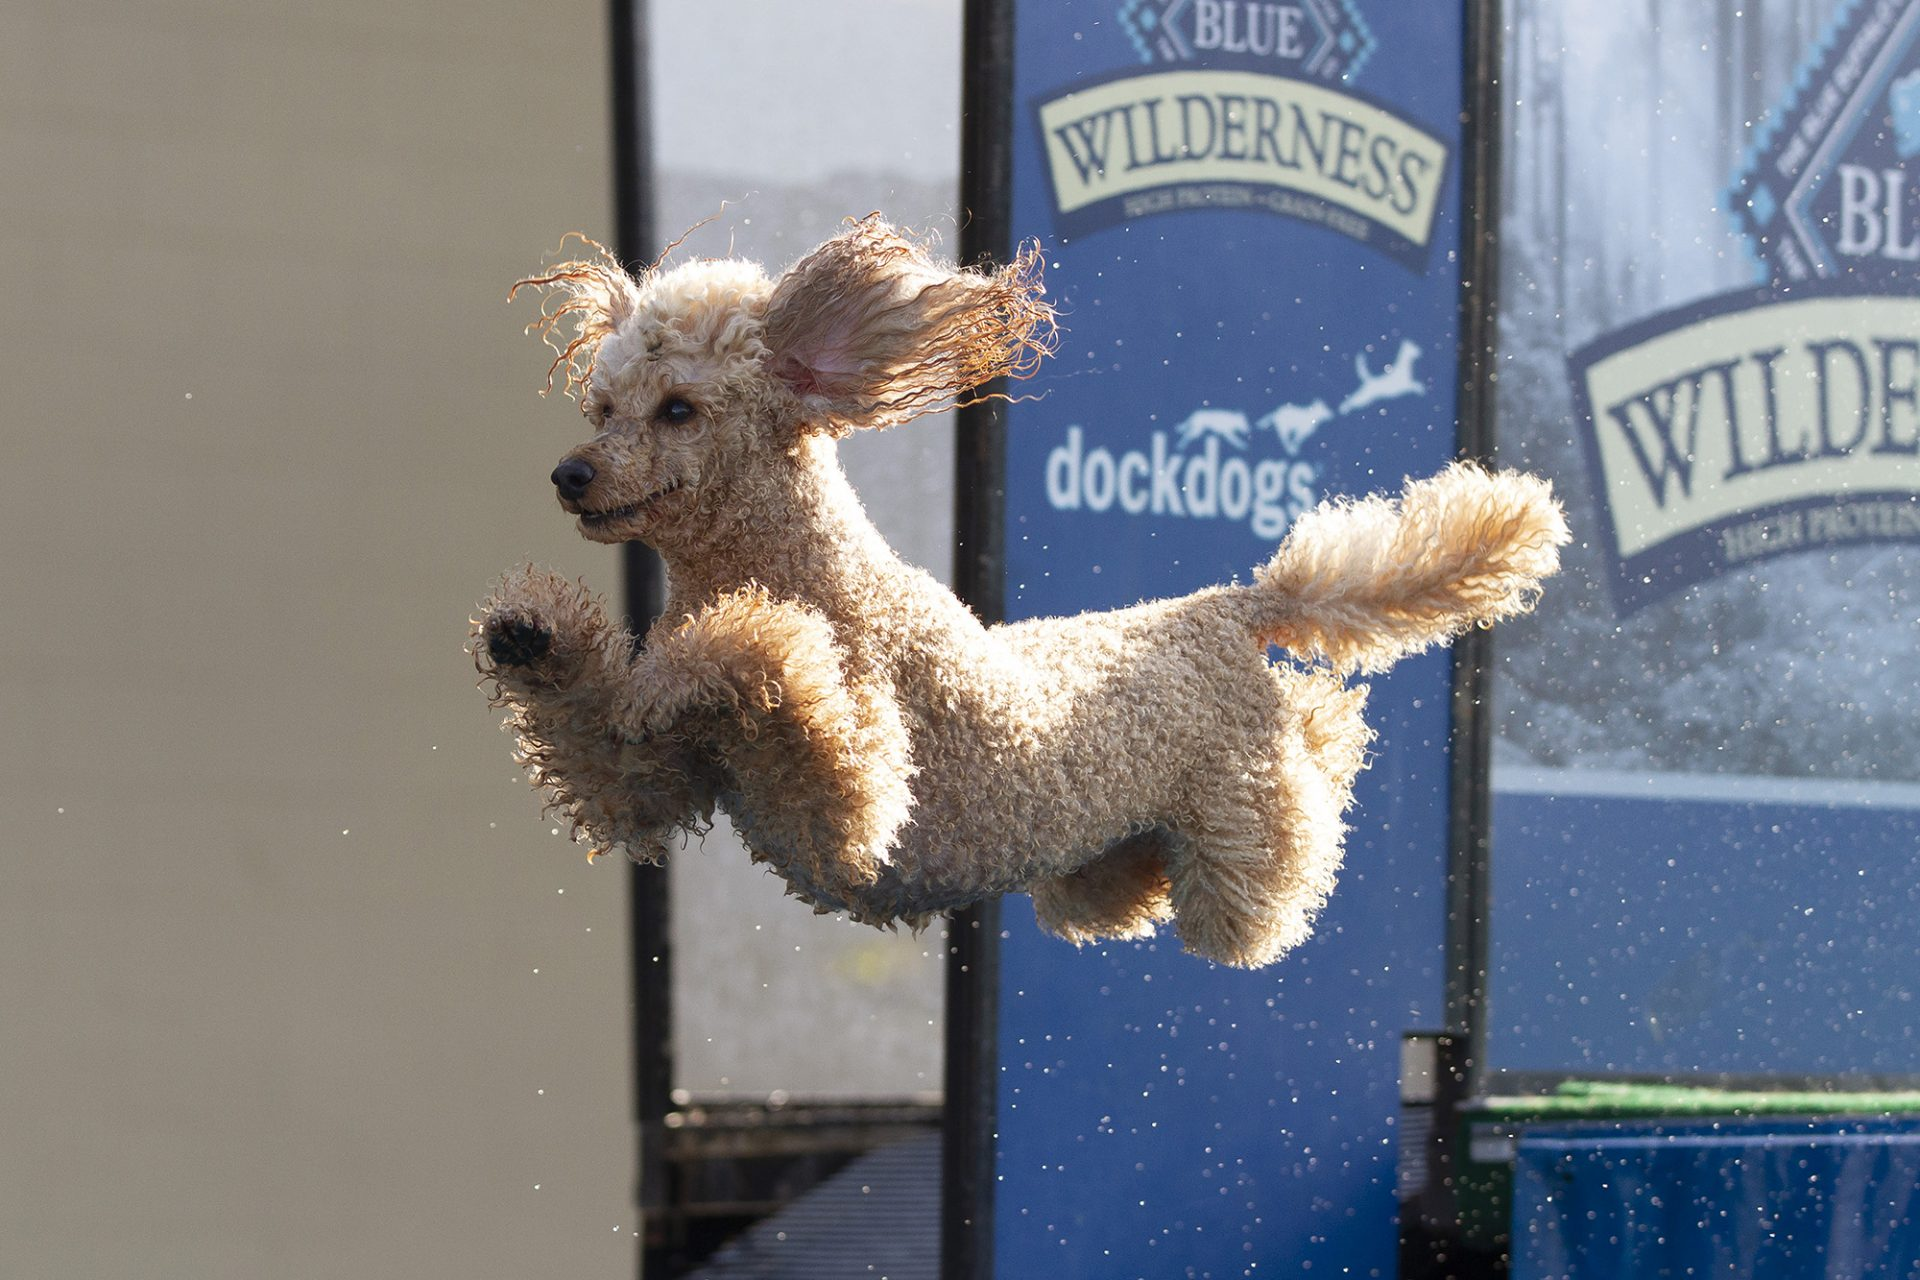 Moyen poodle at dock diving